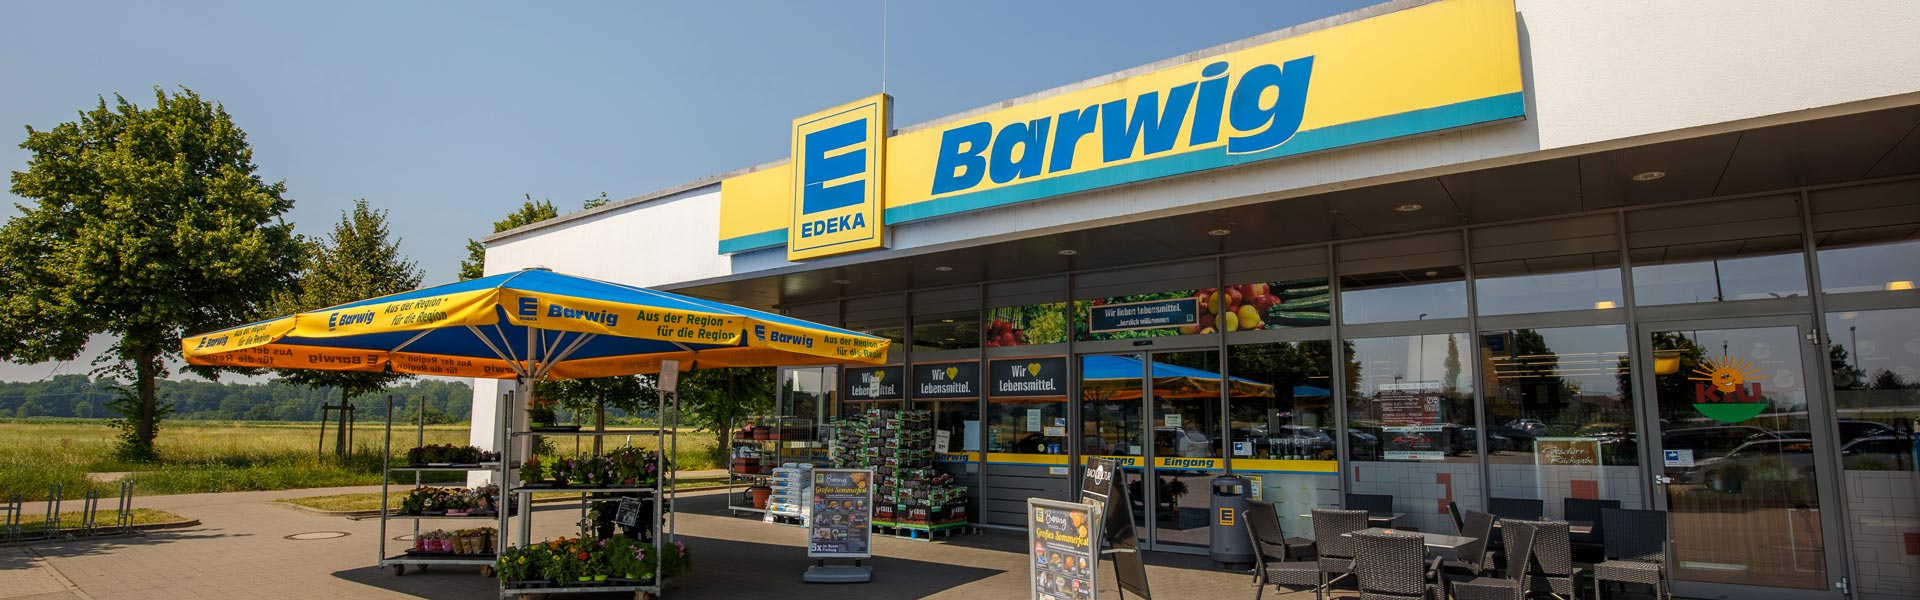 EDEKA Barwig in March-Buchheim